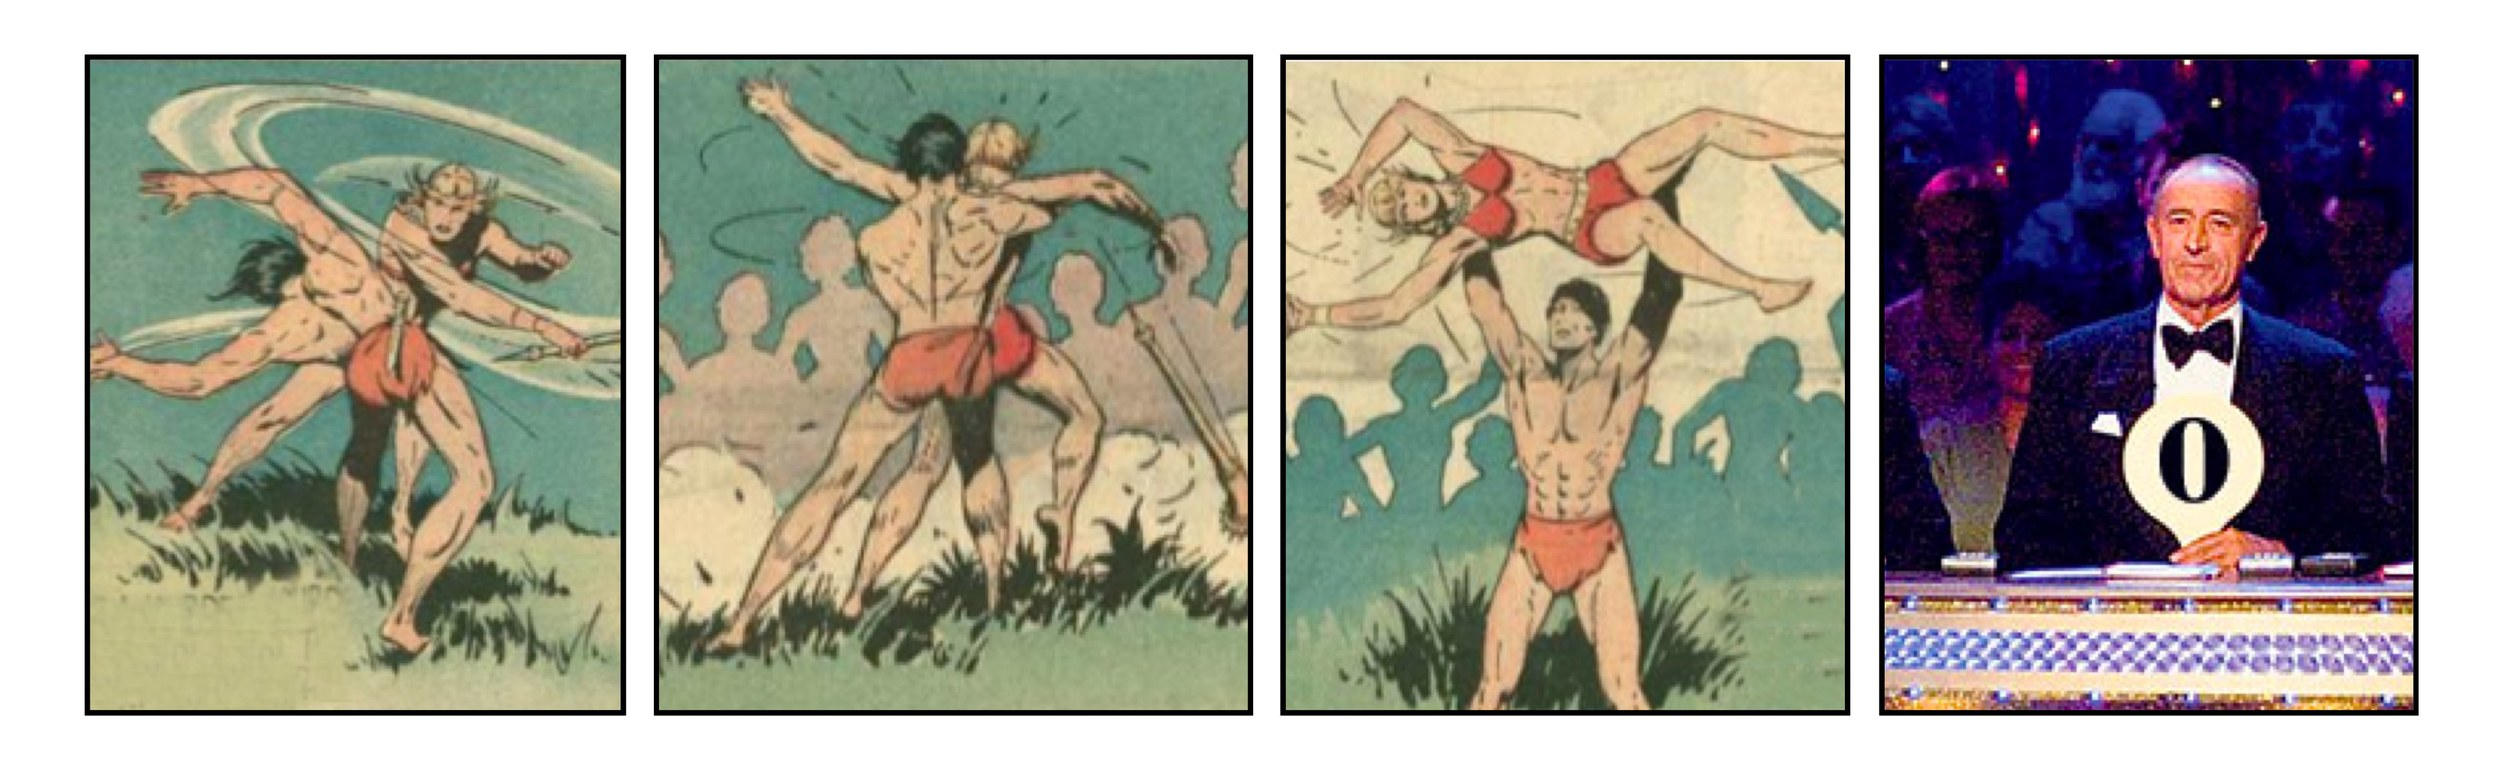 TARZAN vs. STRICTLY COME DANCING